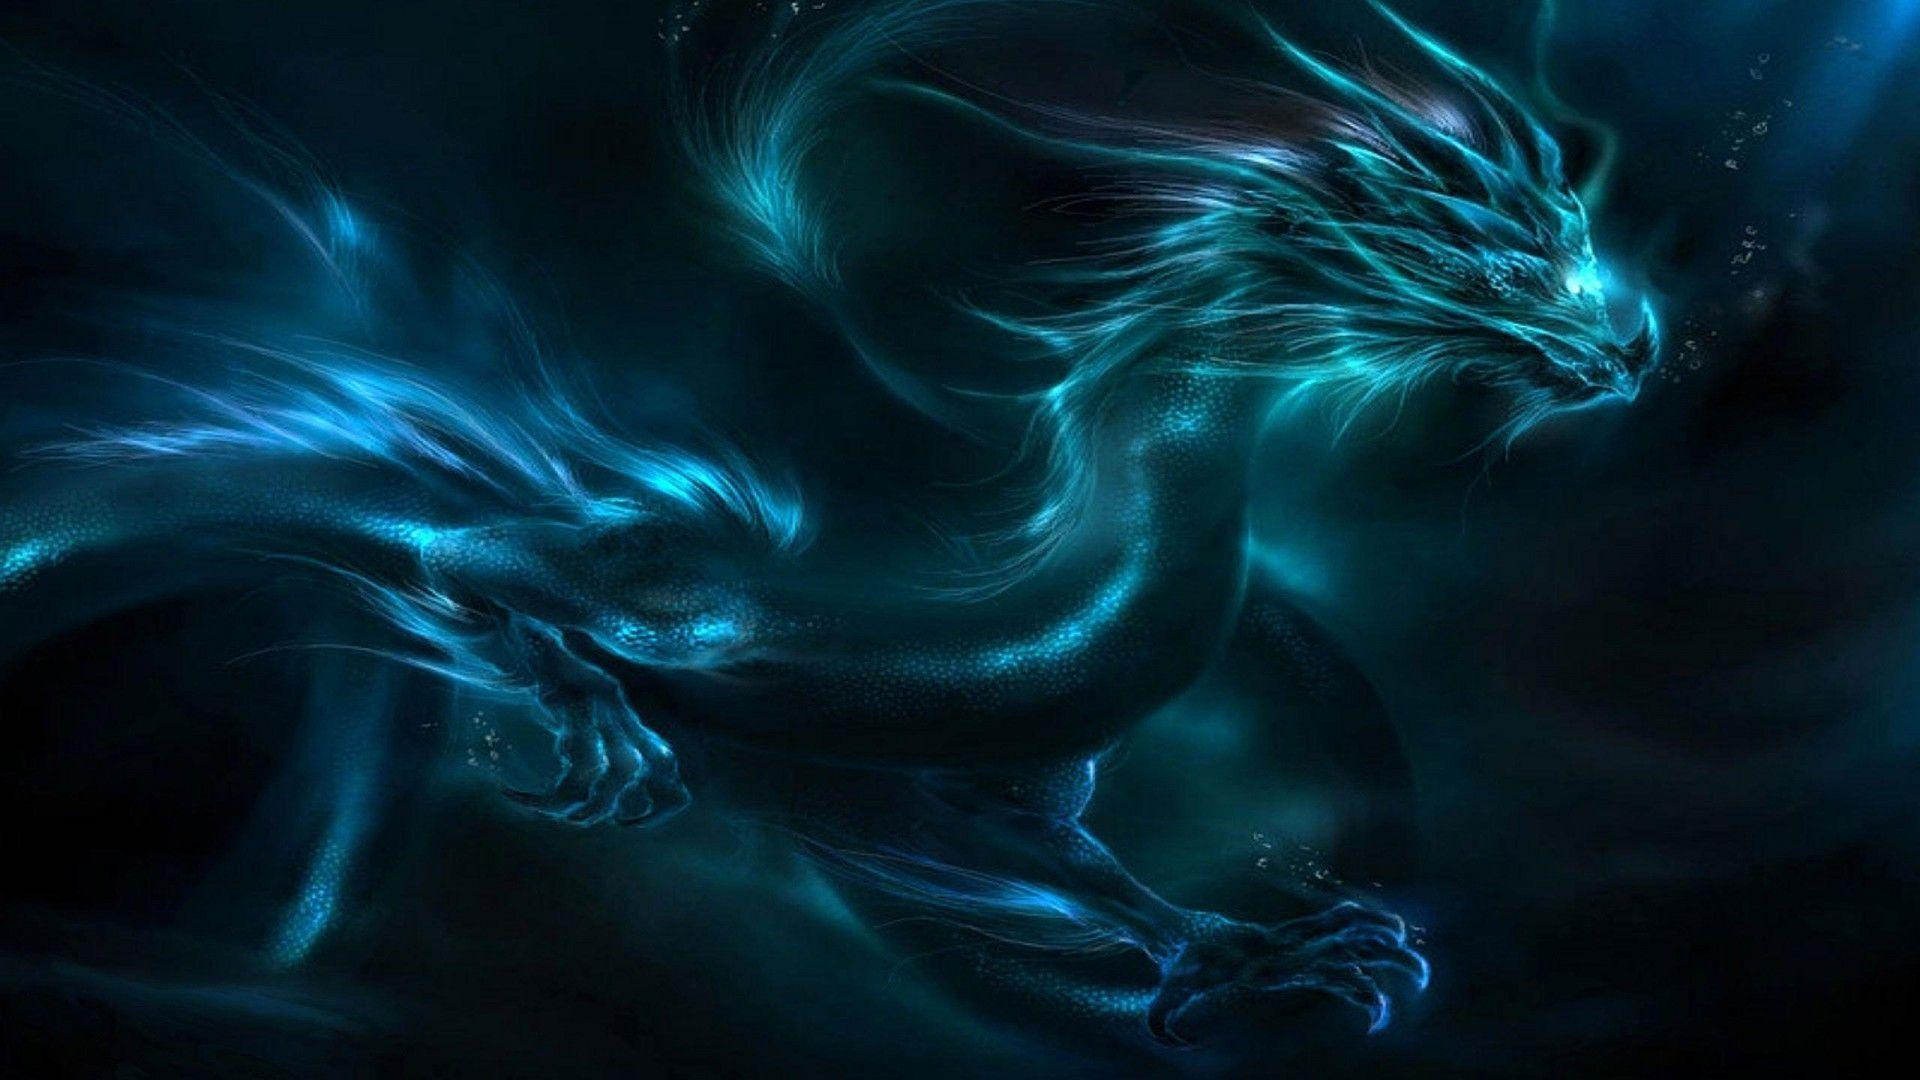 Hd wallpaper wap - Dragon Wallpapers Best Wallpapers